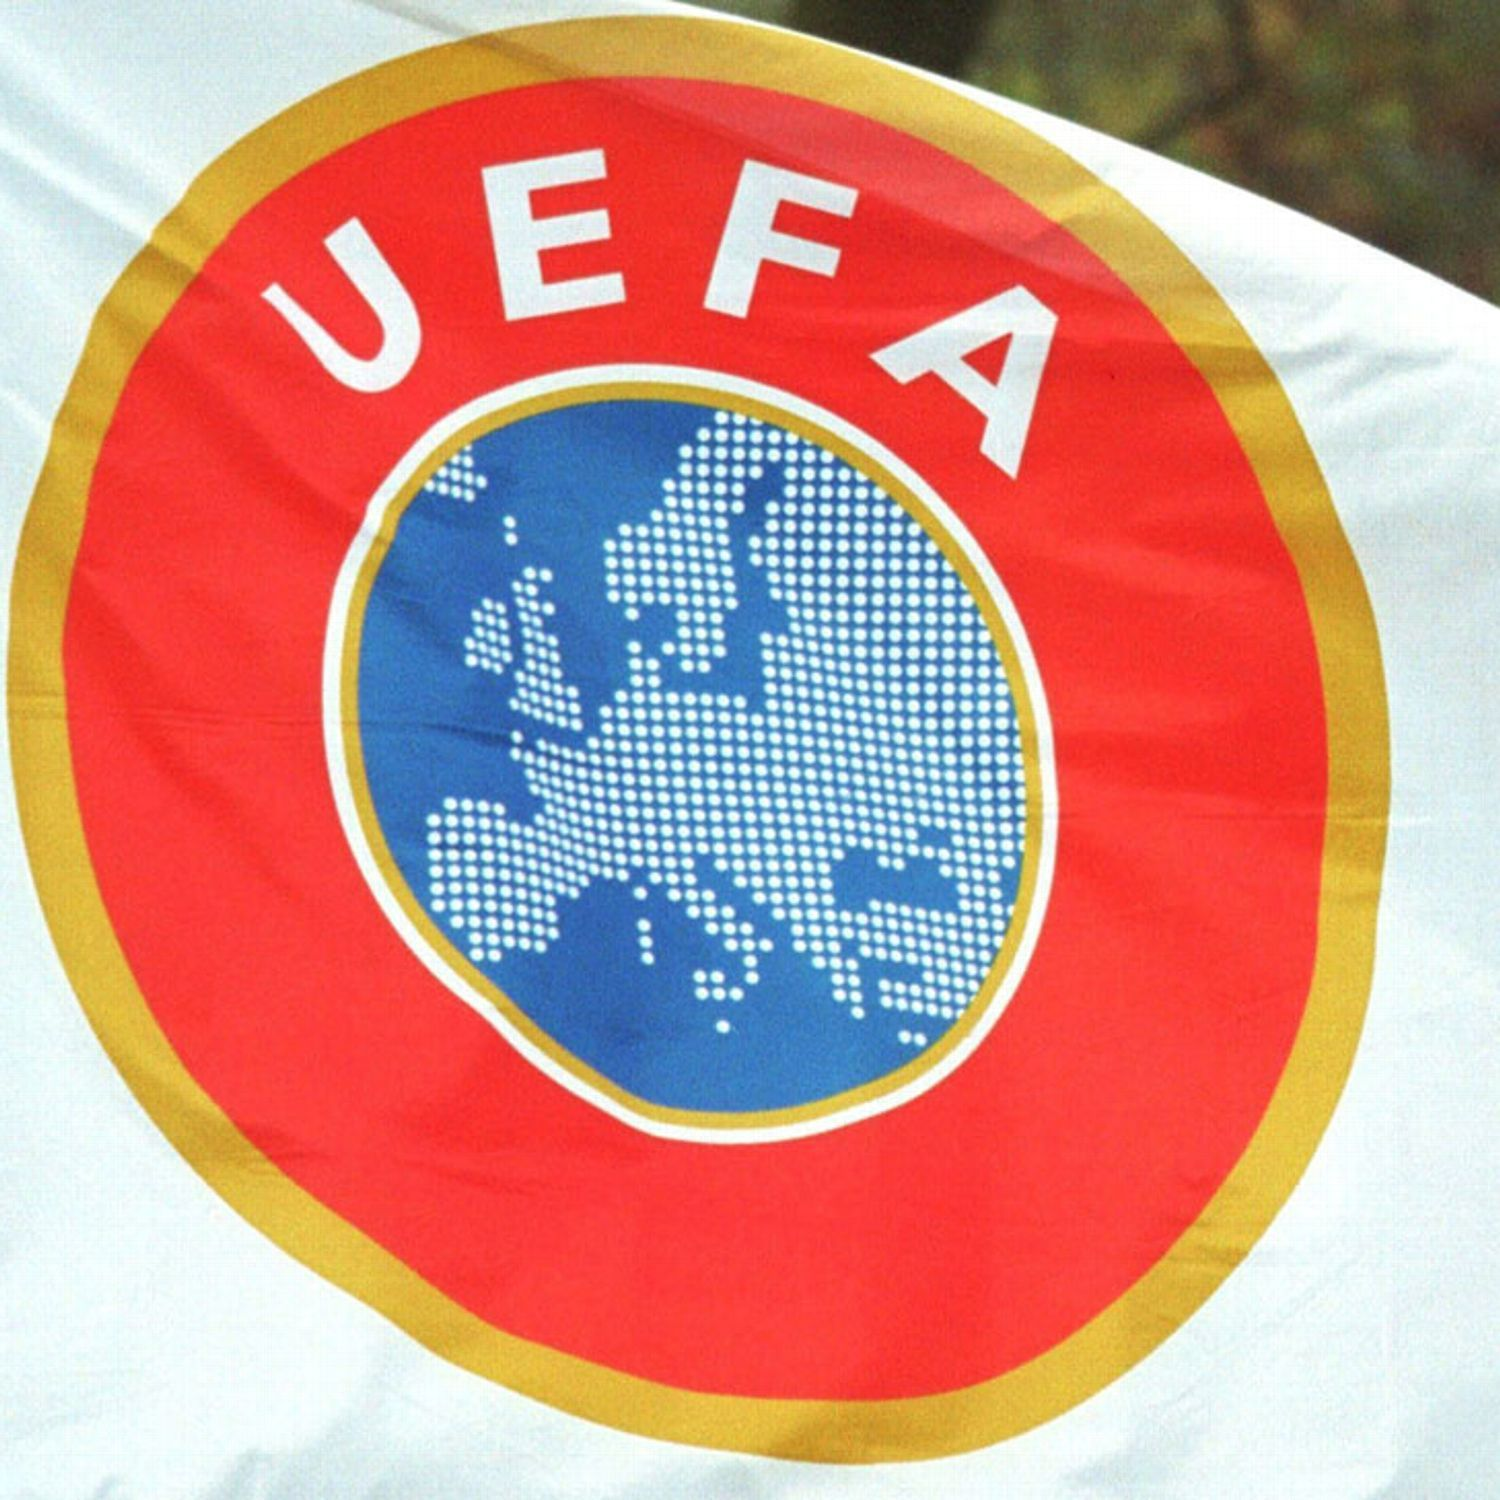 UEFA reveals plan to publish information about leading officials' pay